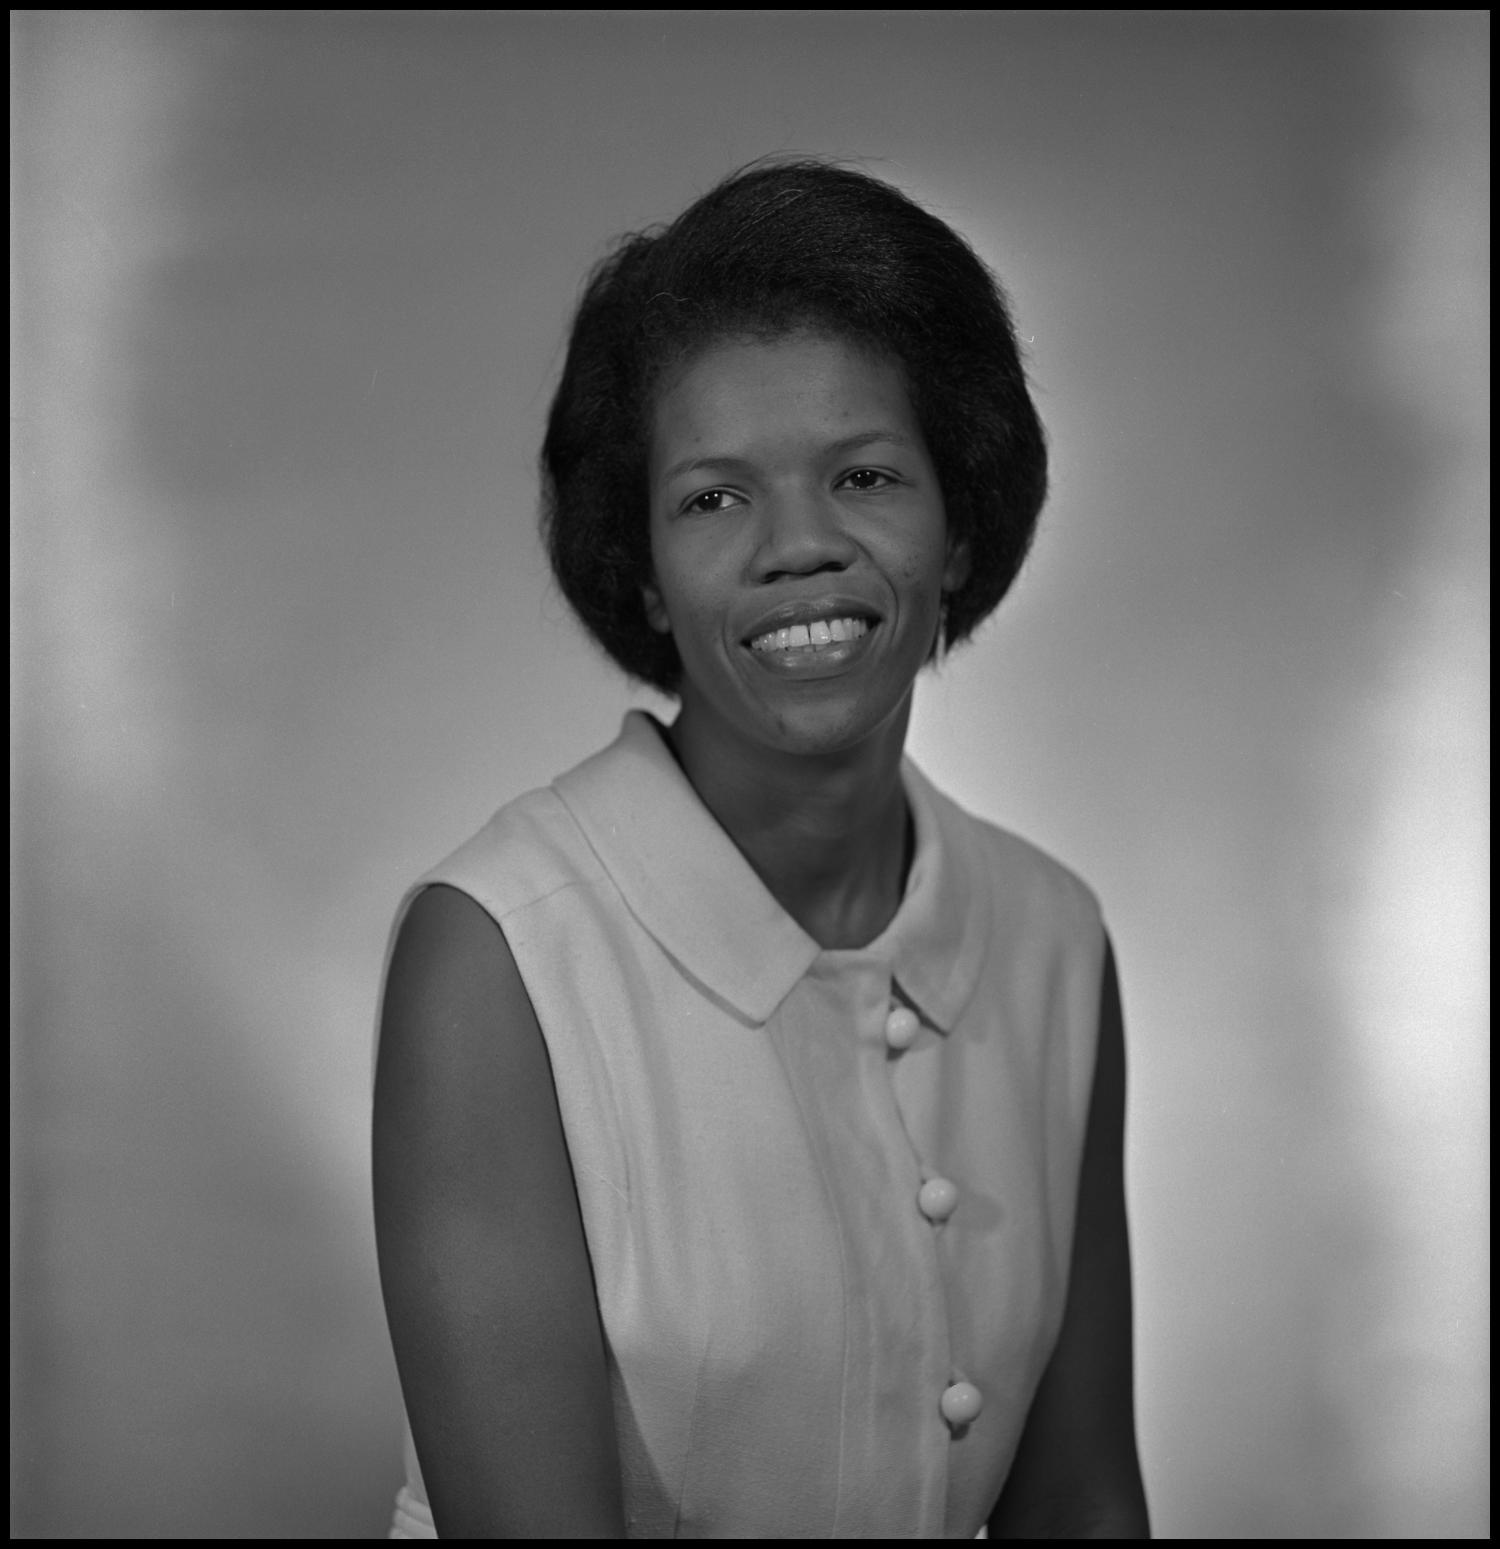 black and white photograph of an African-American women from the waist up, with a sleeveless button-down top